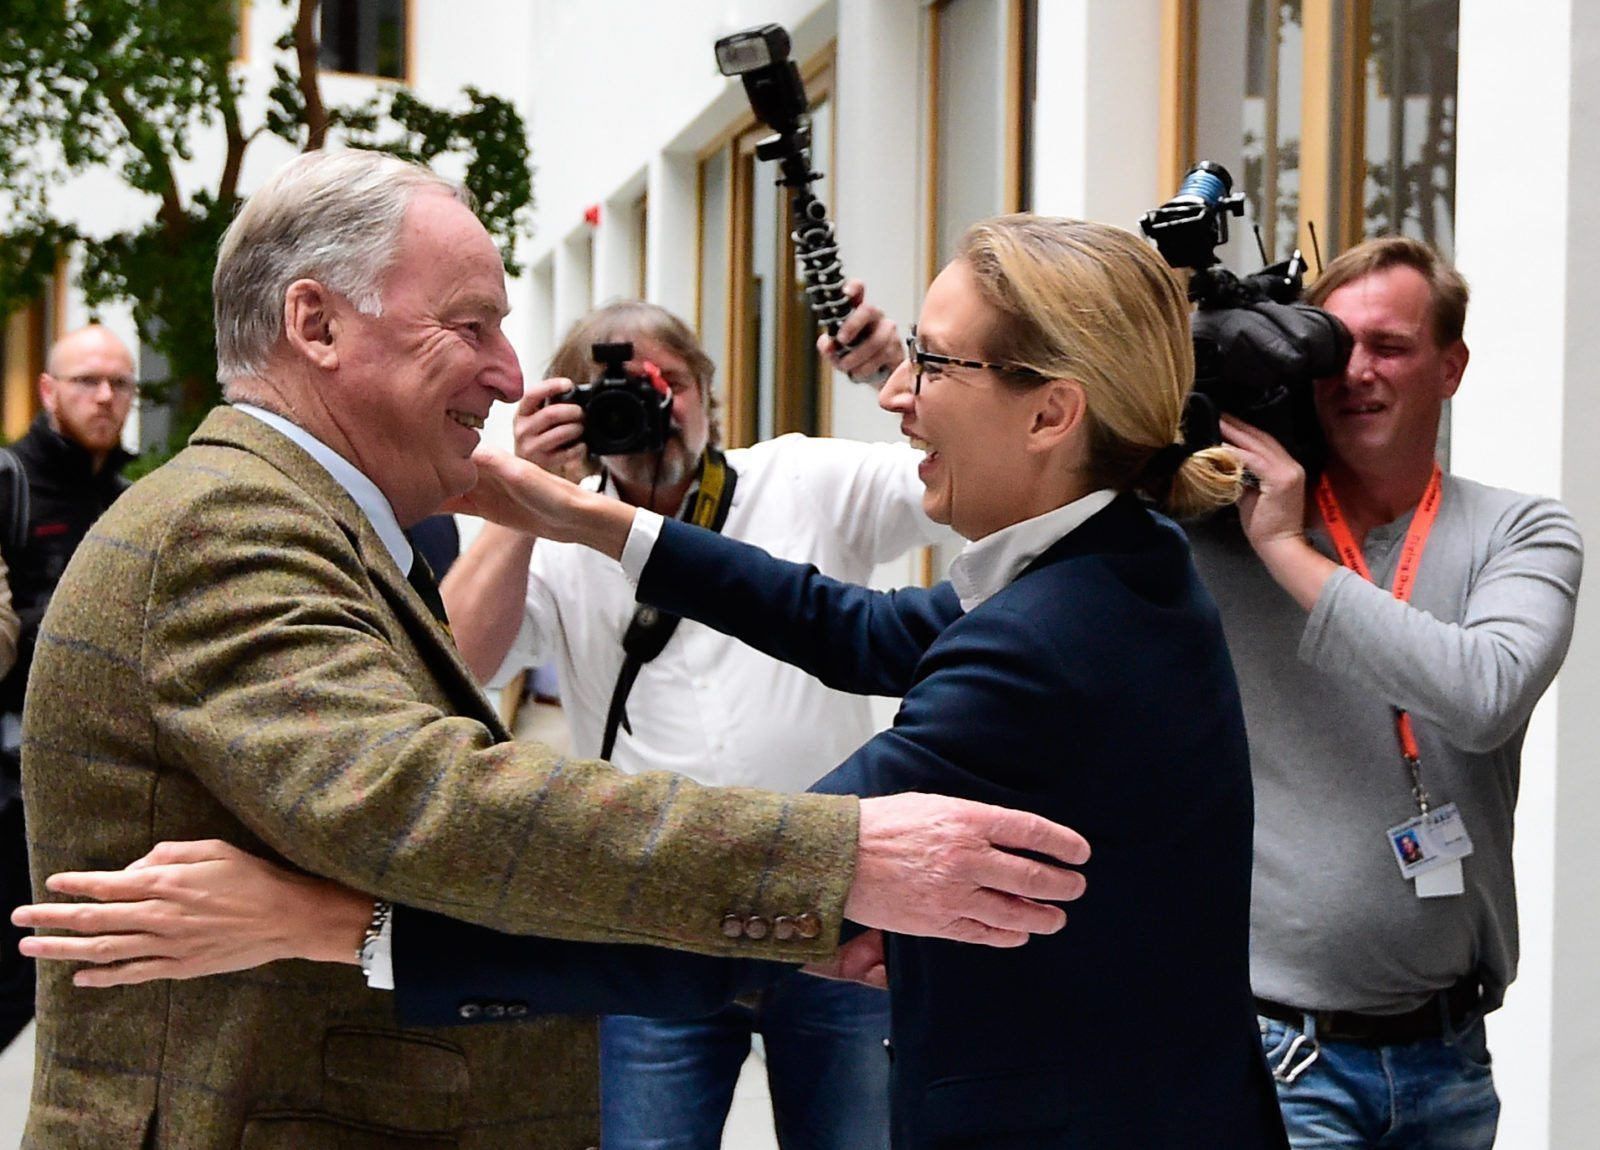 "Alexander Gauland (L) and Alice Weidel, both top candidates of Germany's nationalist Alternative for Germany (AfD) party, hug prior to a press conference in Berlin on September 25, 2017, one day after general elections. The election spelt a breakthrough for the anti-Islam Alternative for Germany (AfD), which with 12.6 percent became the third strongest party and vowed to ""go after"" chancellor Angela Merkel over her migrant and refugee policy. / AFP PHOTO / Tobias SCHWARZ (Photo credit should read TOBIAS SCHWARZ/AFP/Getty Images)"